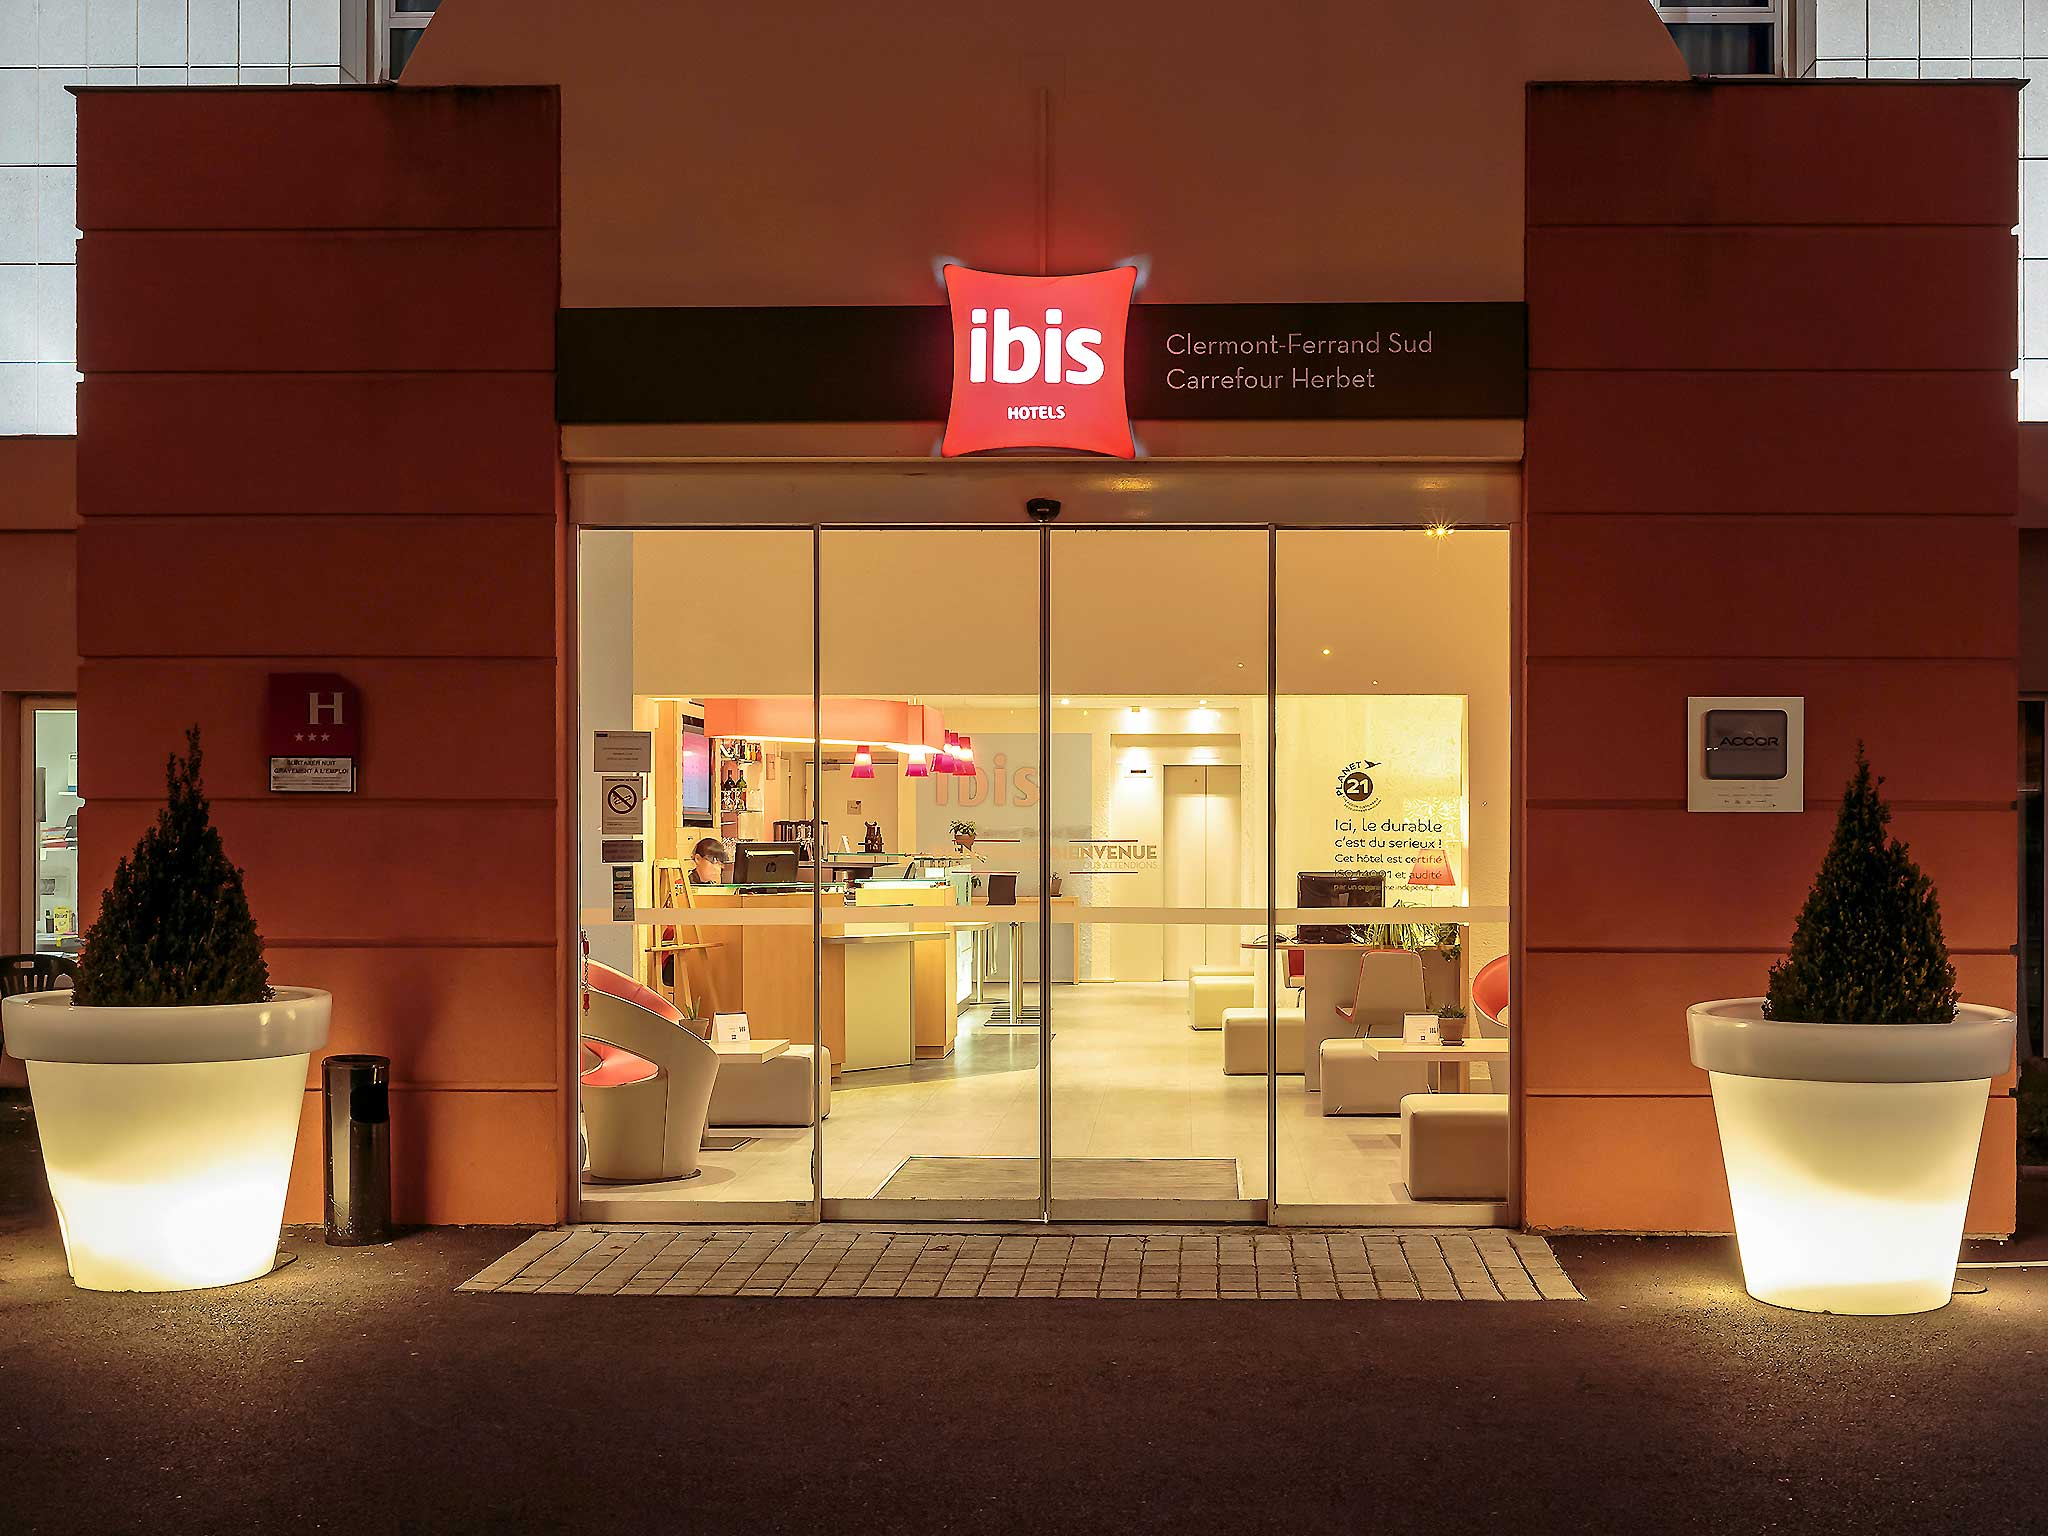 Hotel – ibis Clermont-Ferrand Sud Carrefour Herbet